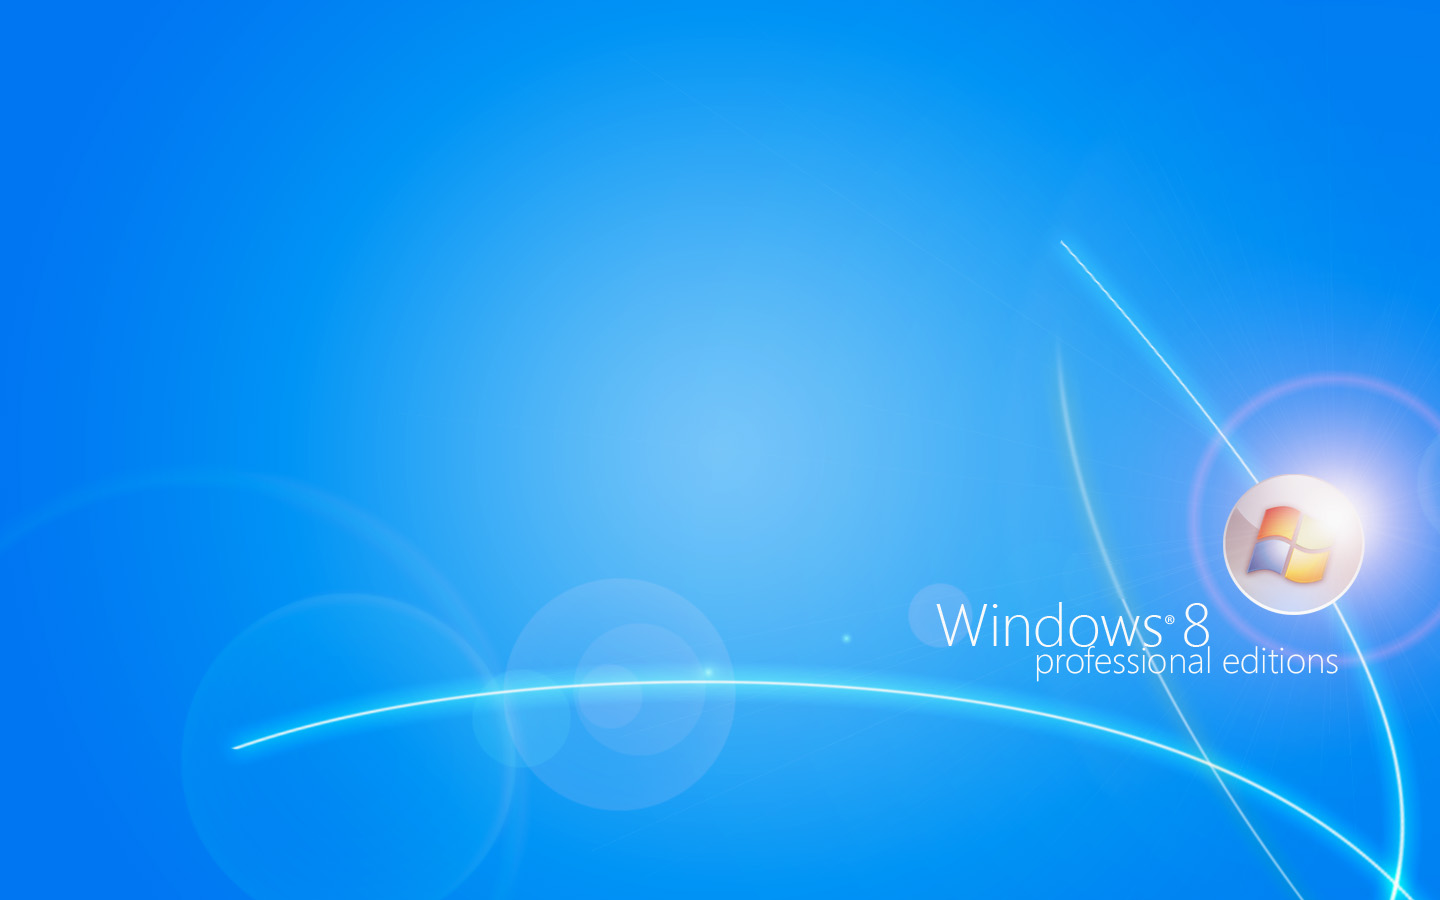 Amazing Windows 8 Wallpapers available for Download 1440x900